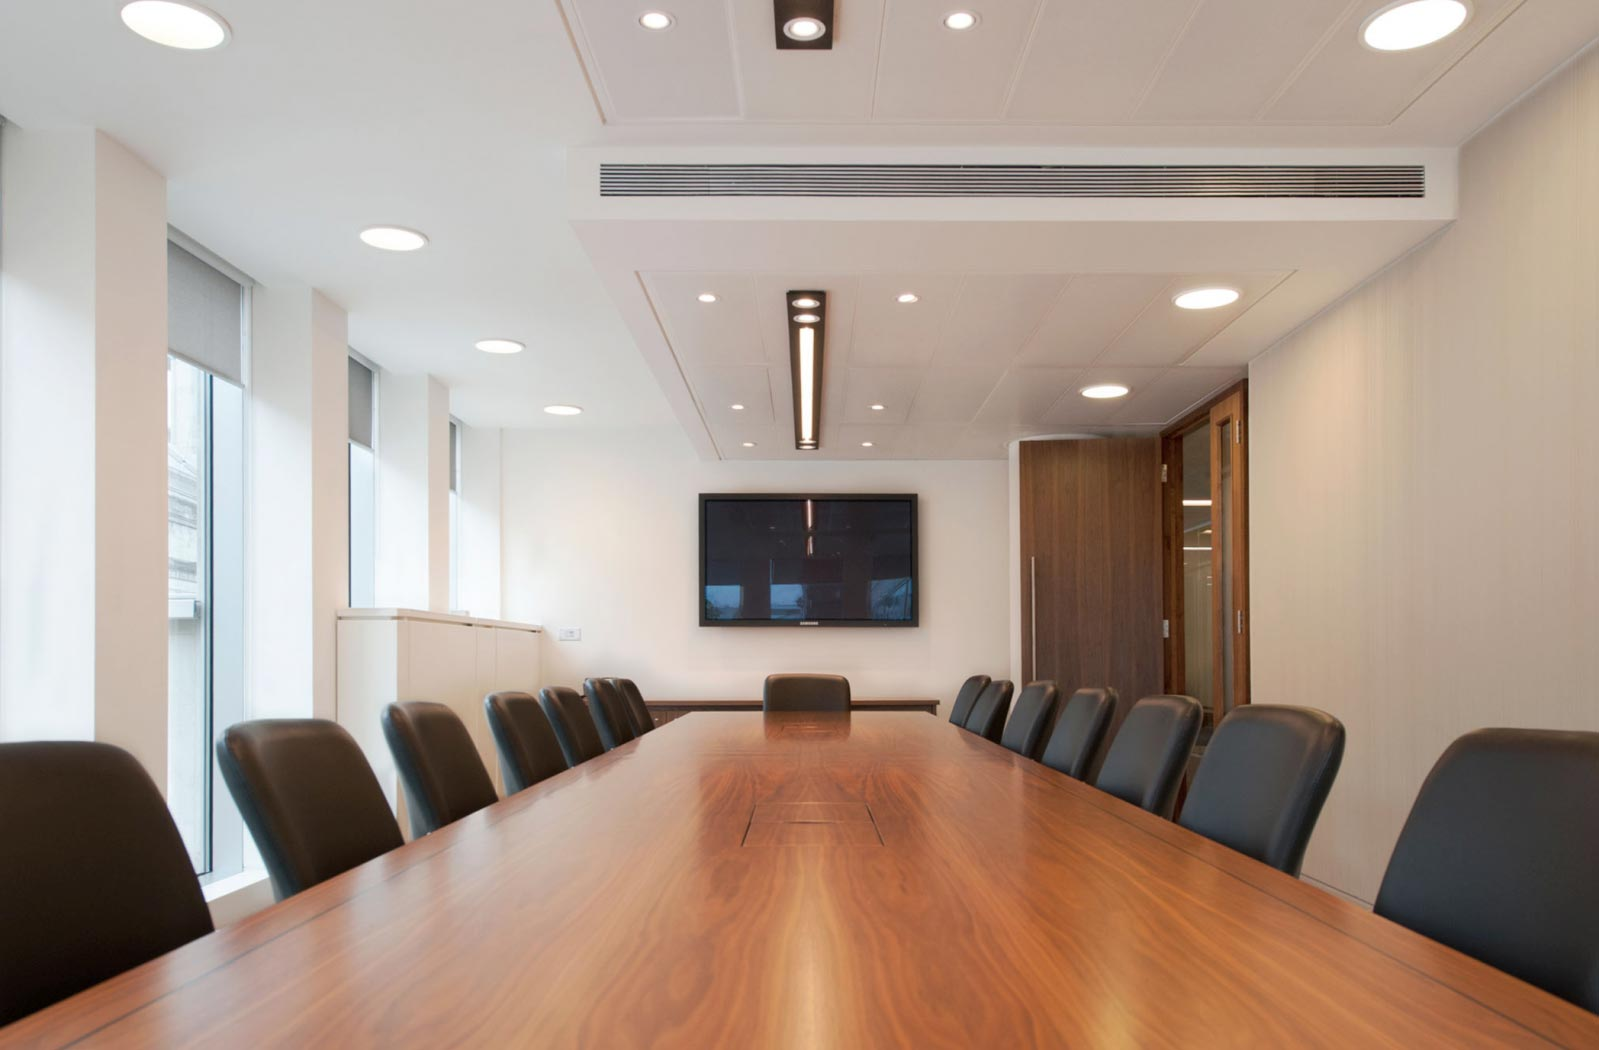 Workplace Conference Room Lighting